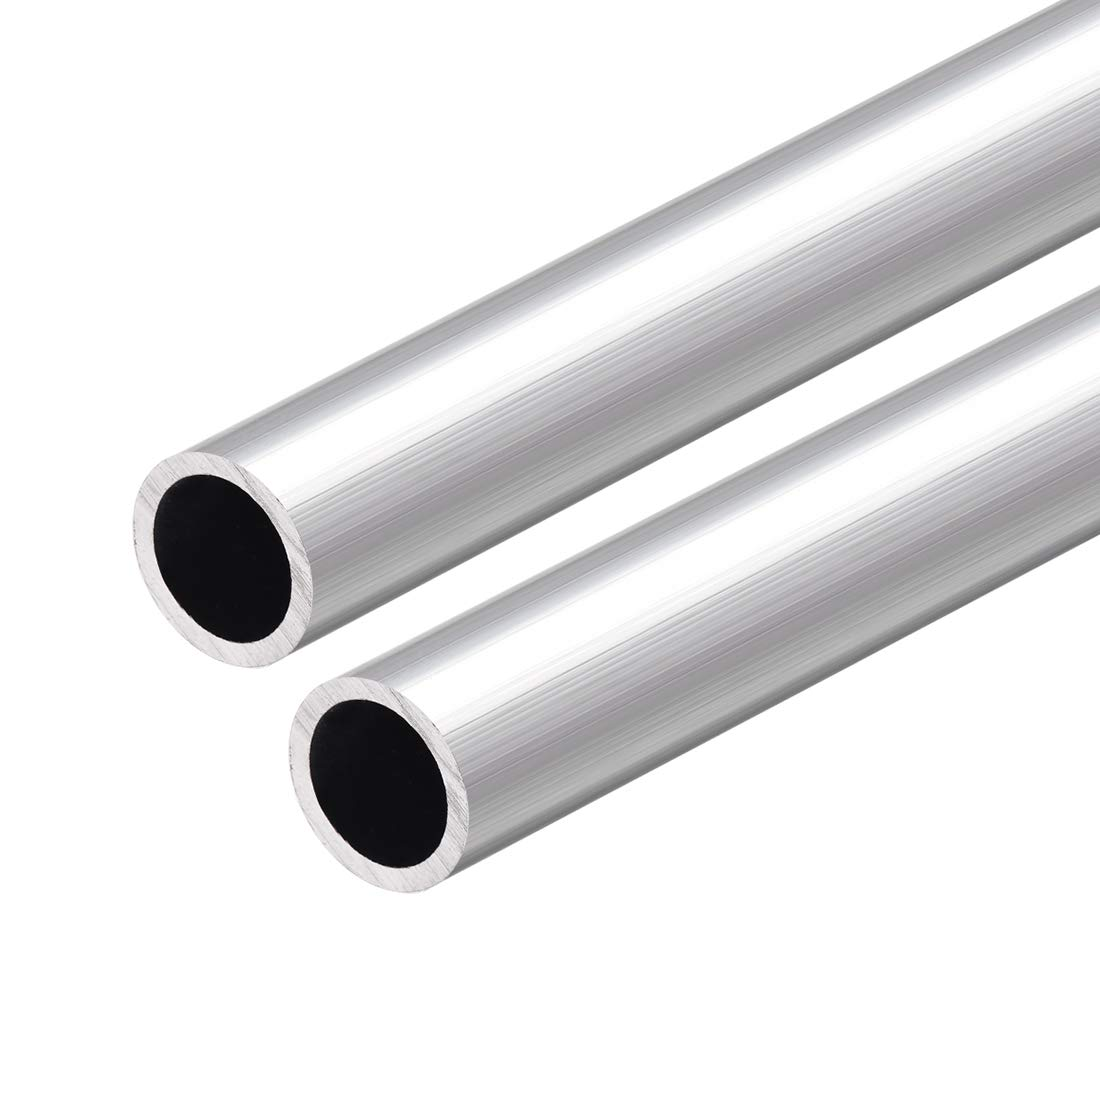 sourcing map 6063 Aluminum Round Tube 300mm Length 18mm OD 11mm Inner Dia Seamless Aluminum Straight Tubing 2 Pcs